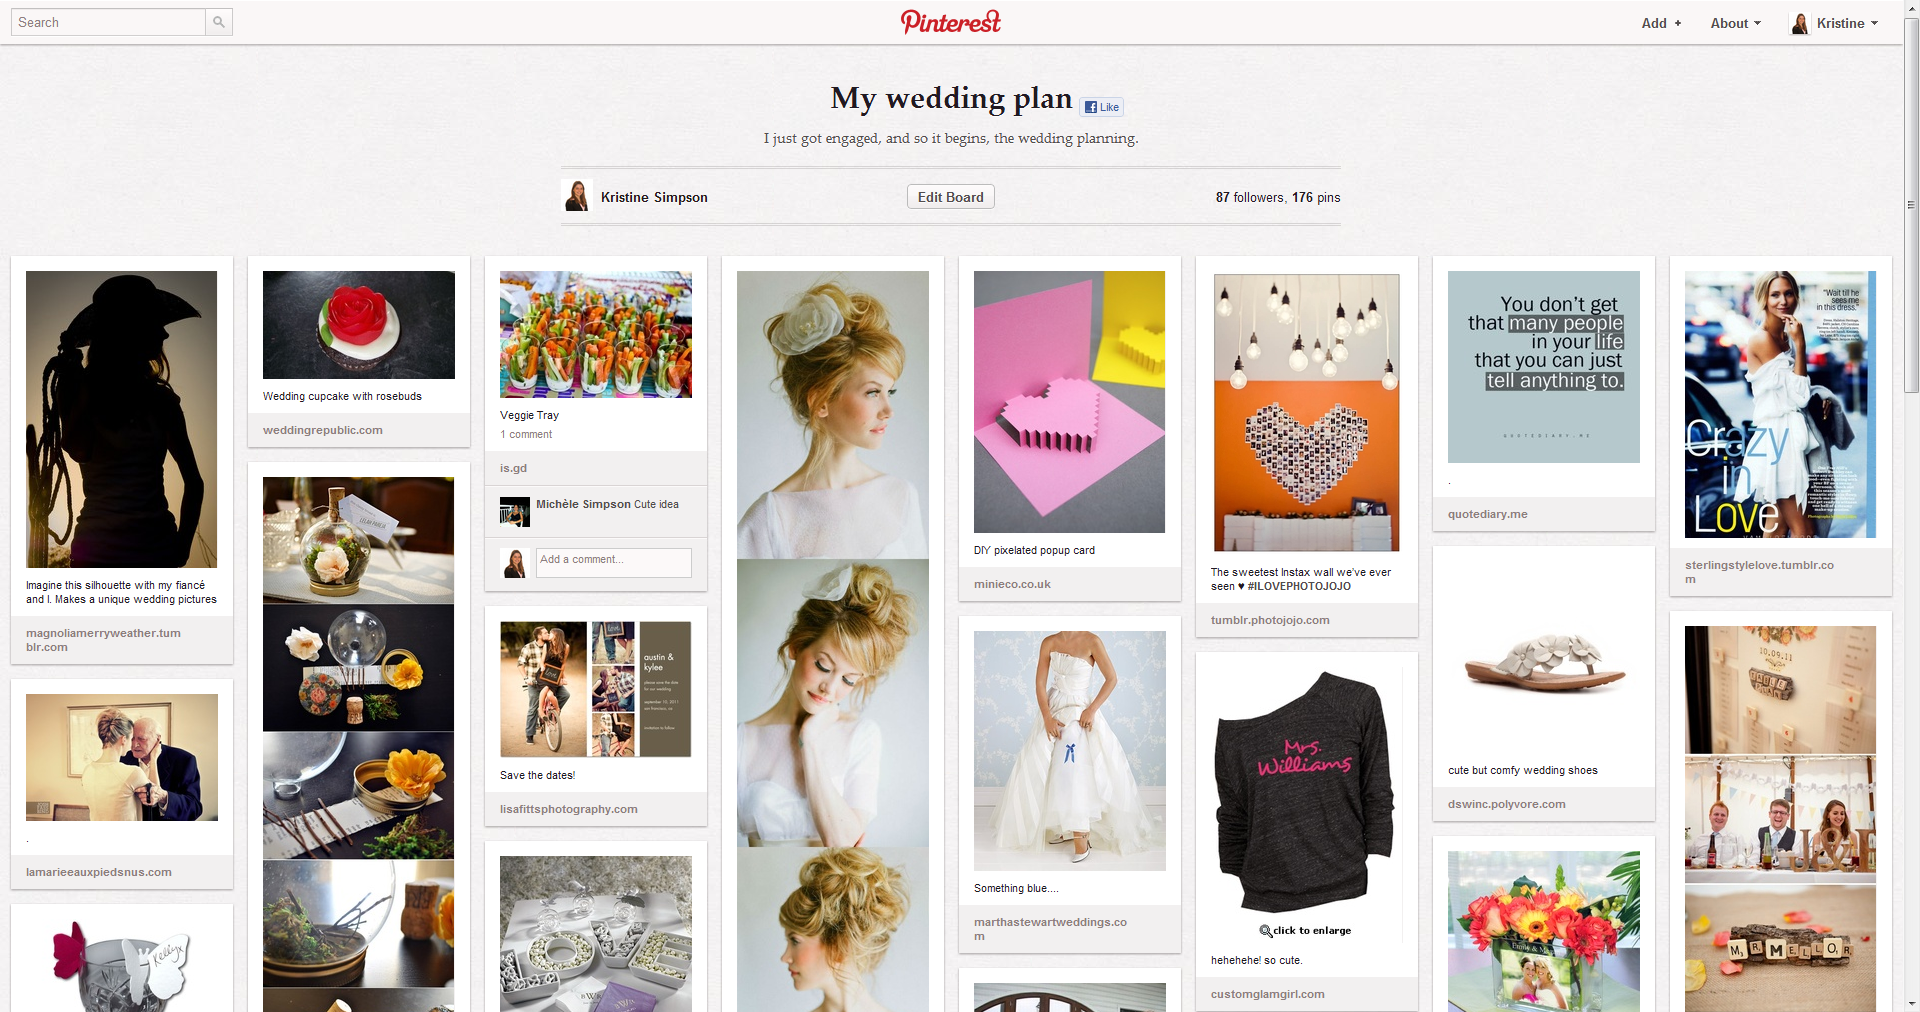 Five Businesses on Pinterest - Thornley Fallis